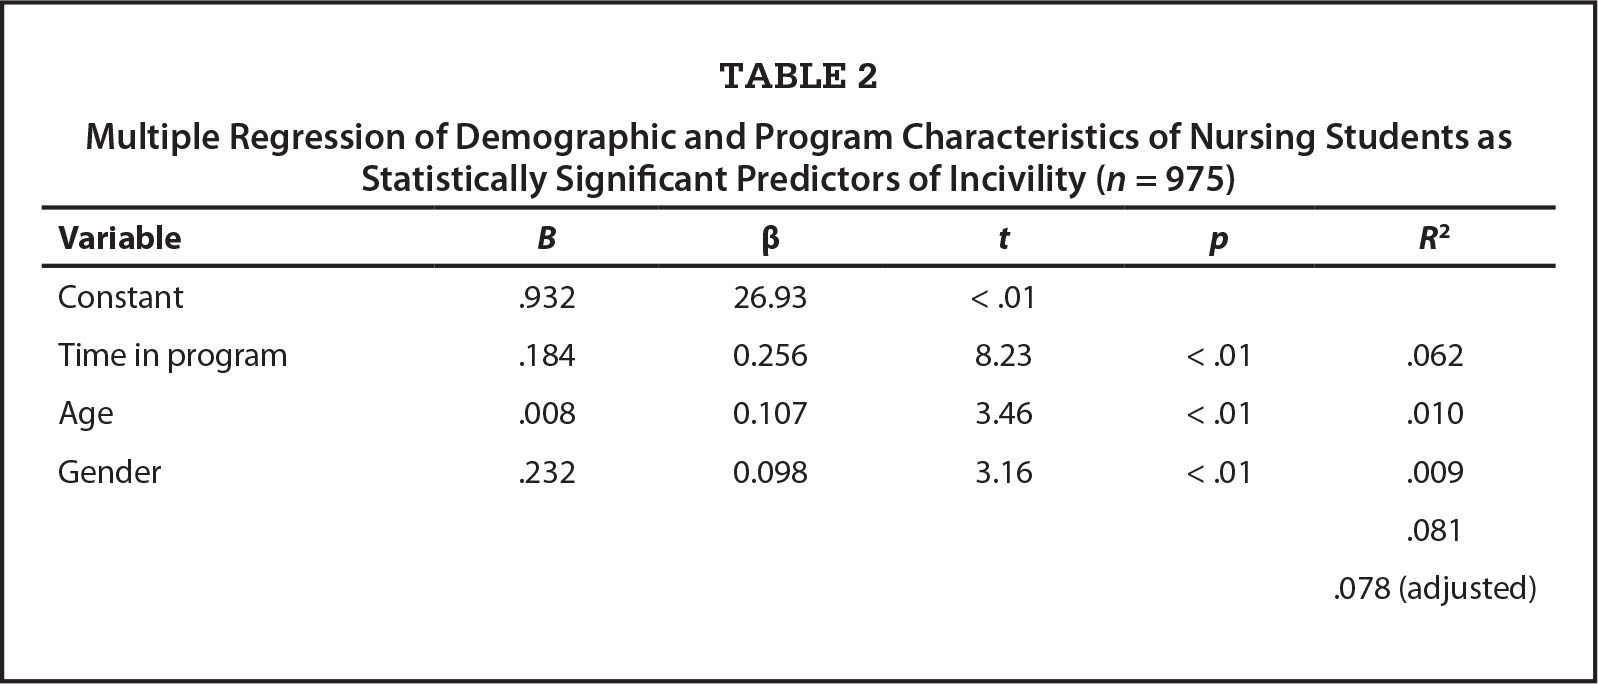 Multiple Regression of Demographic and Program Characteristics of Nursing Students as Statistically Significant Predictors of Incivility (n = 975)